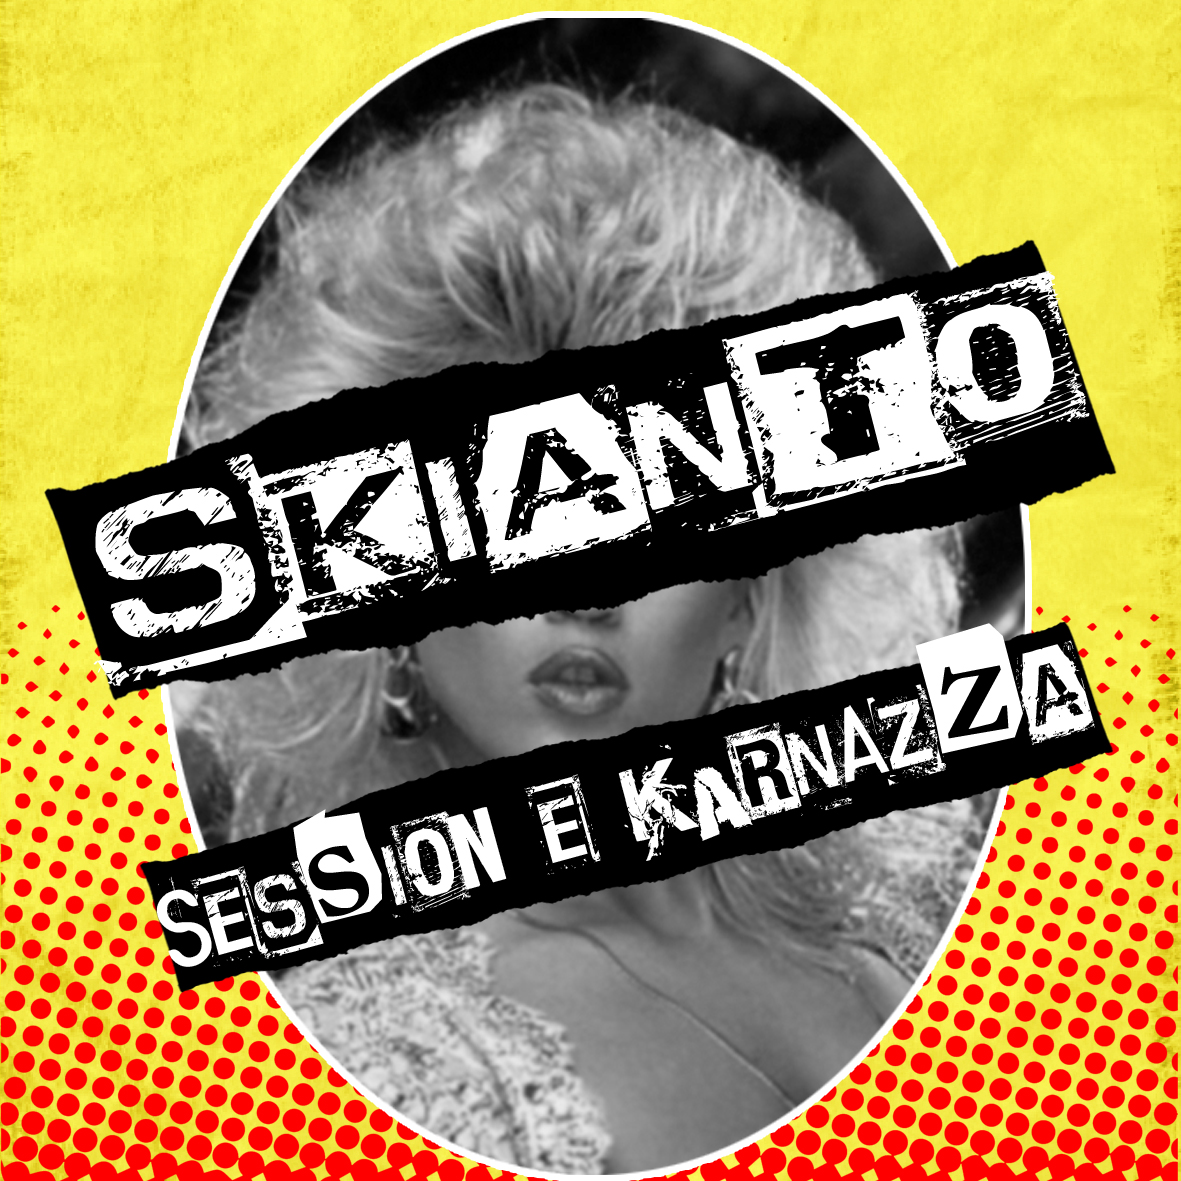 SKIANTO: Session & Karnazza